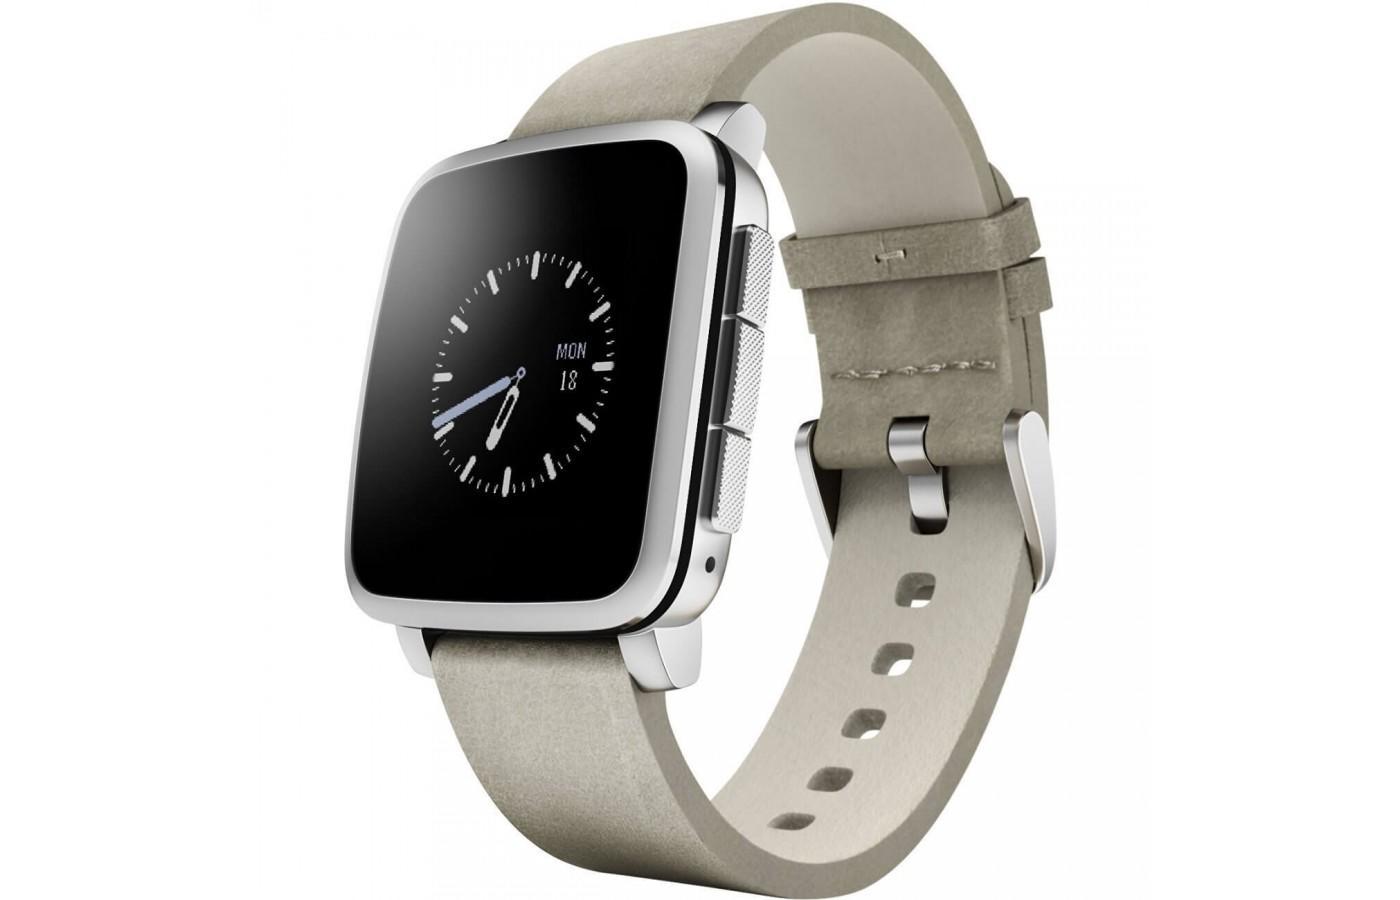 Pebble Time Steel - an attractive smartwatch option